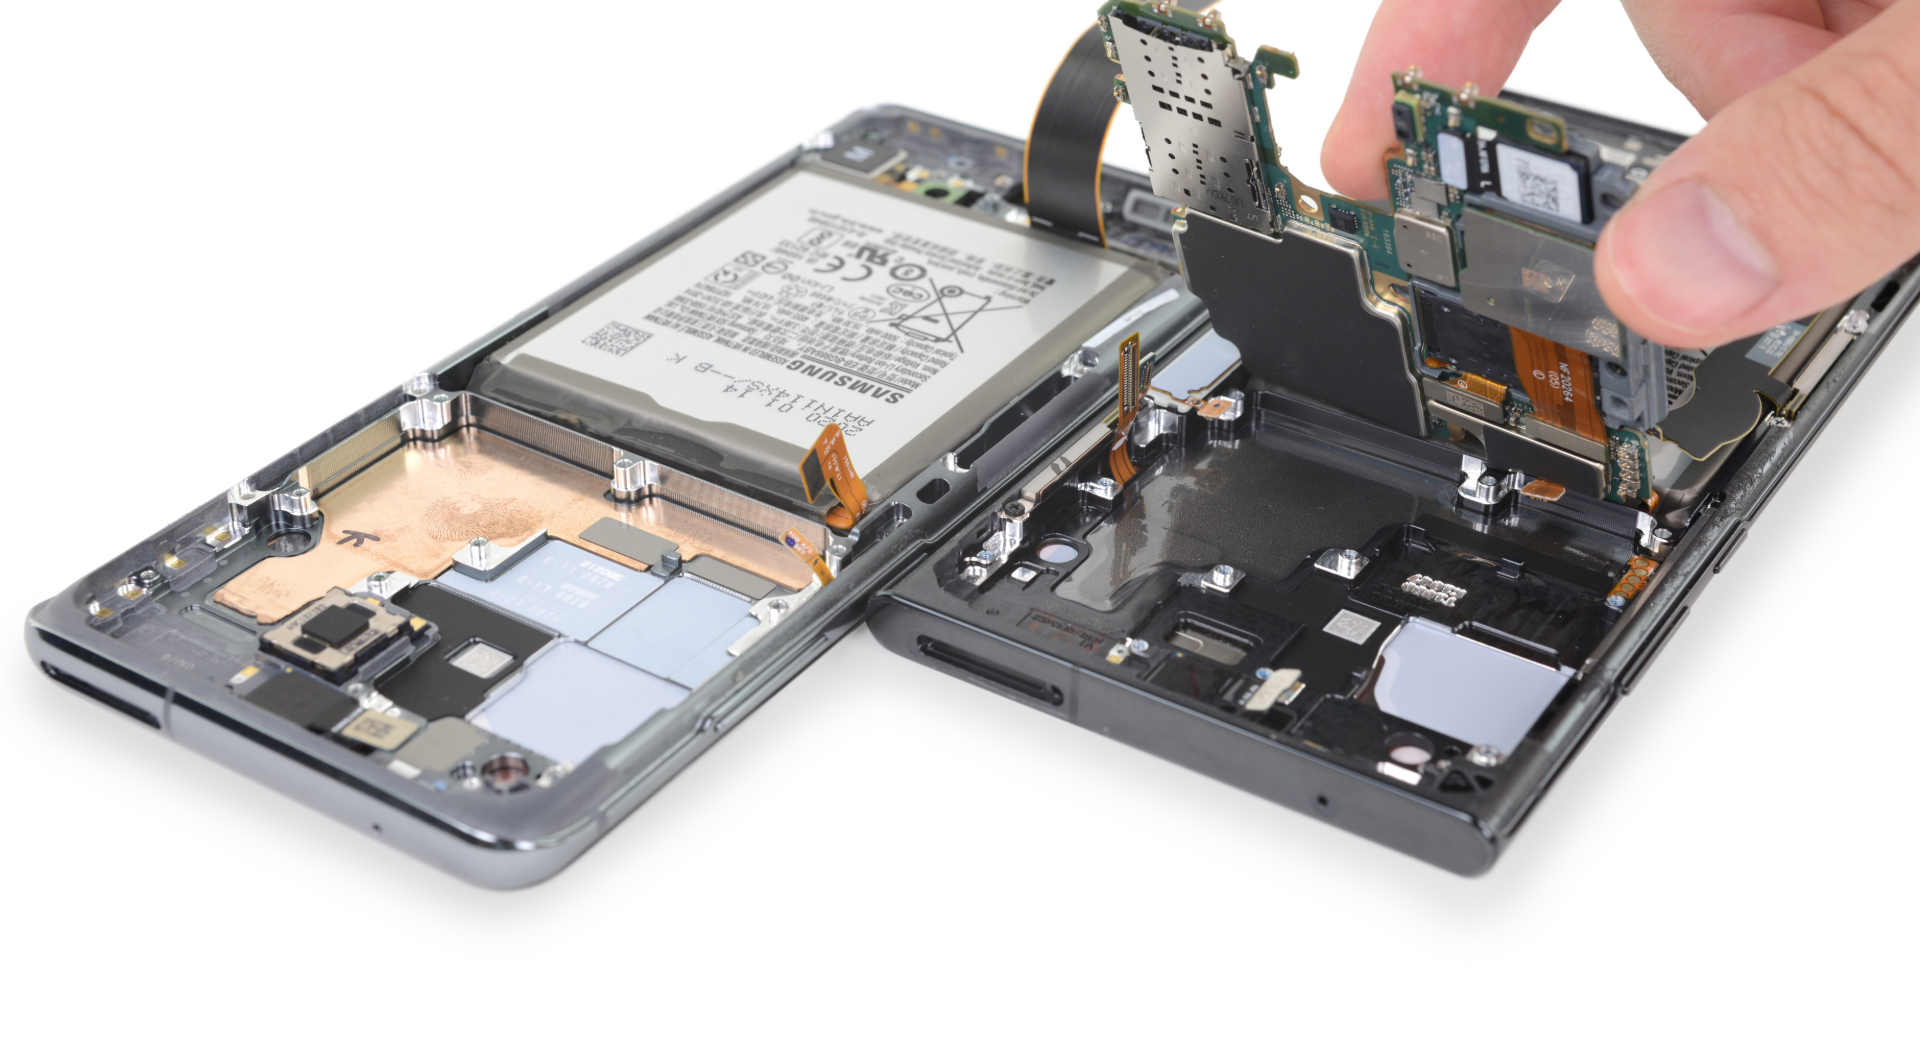 Pulling up the motherboard from a Galaxy Note 20, with graphene cooling pads.